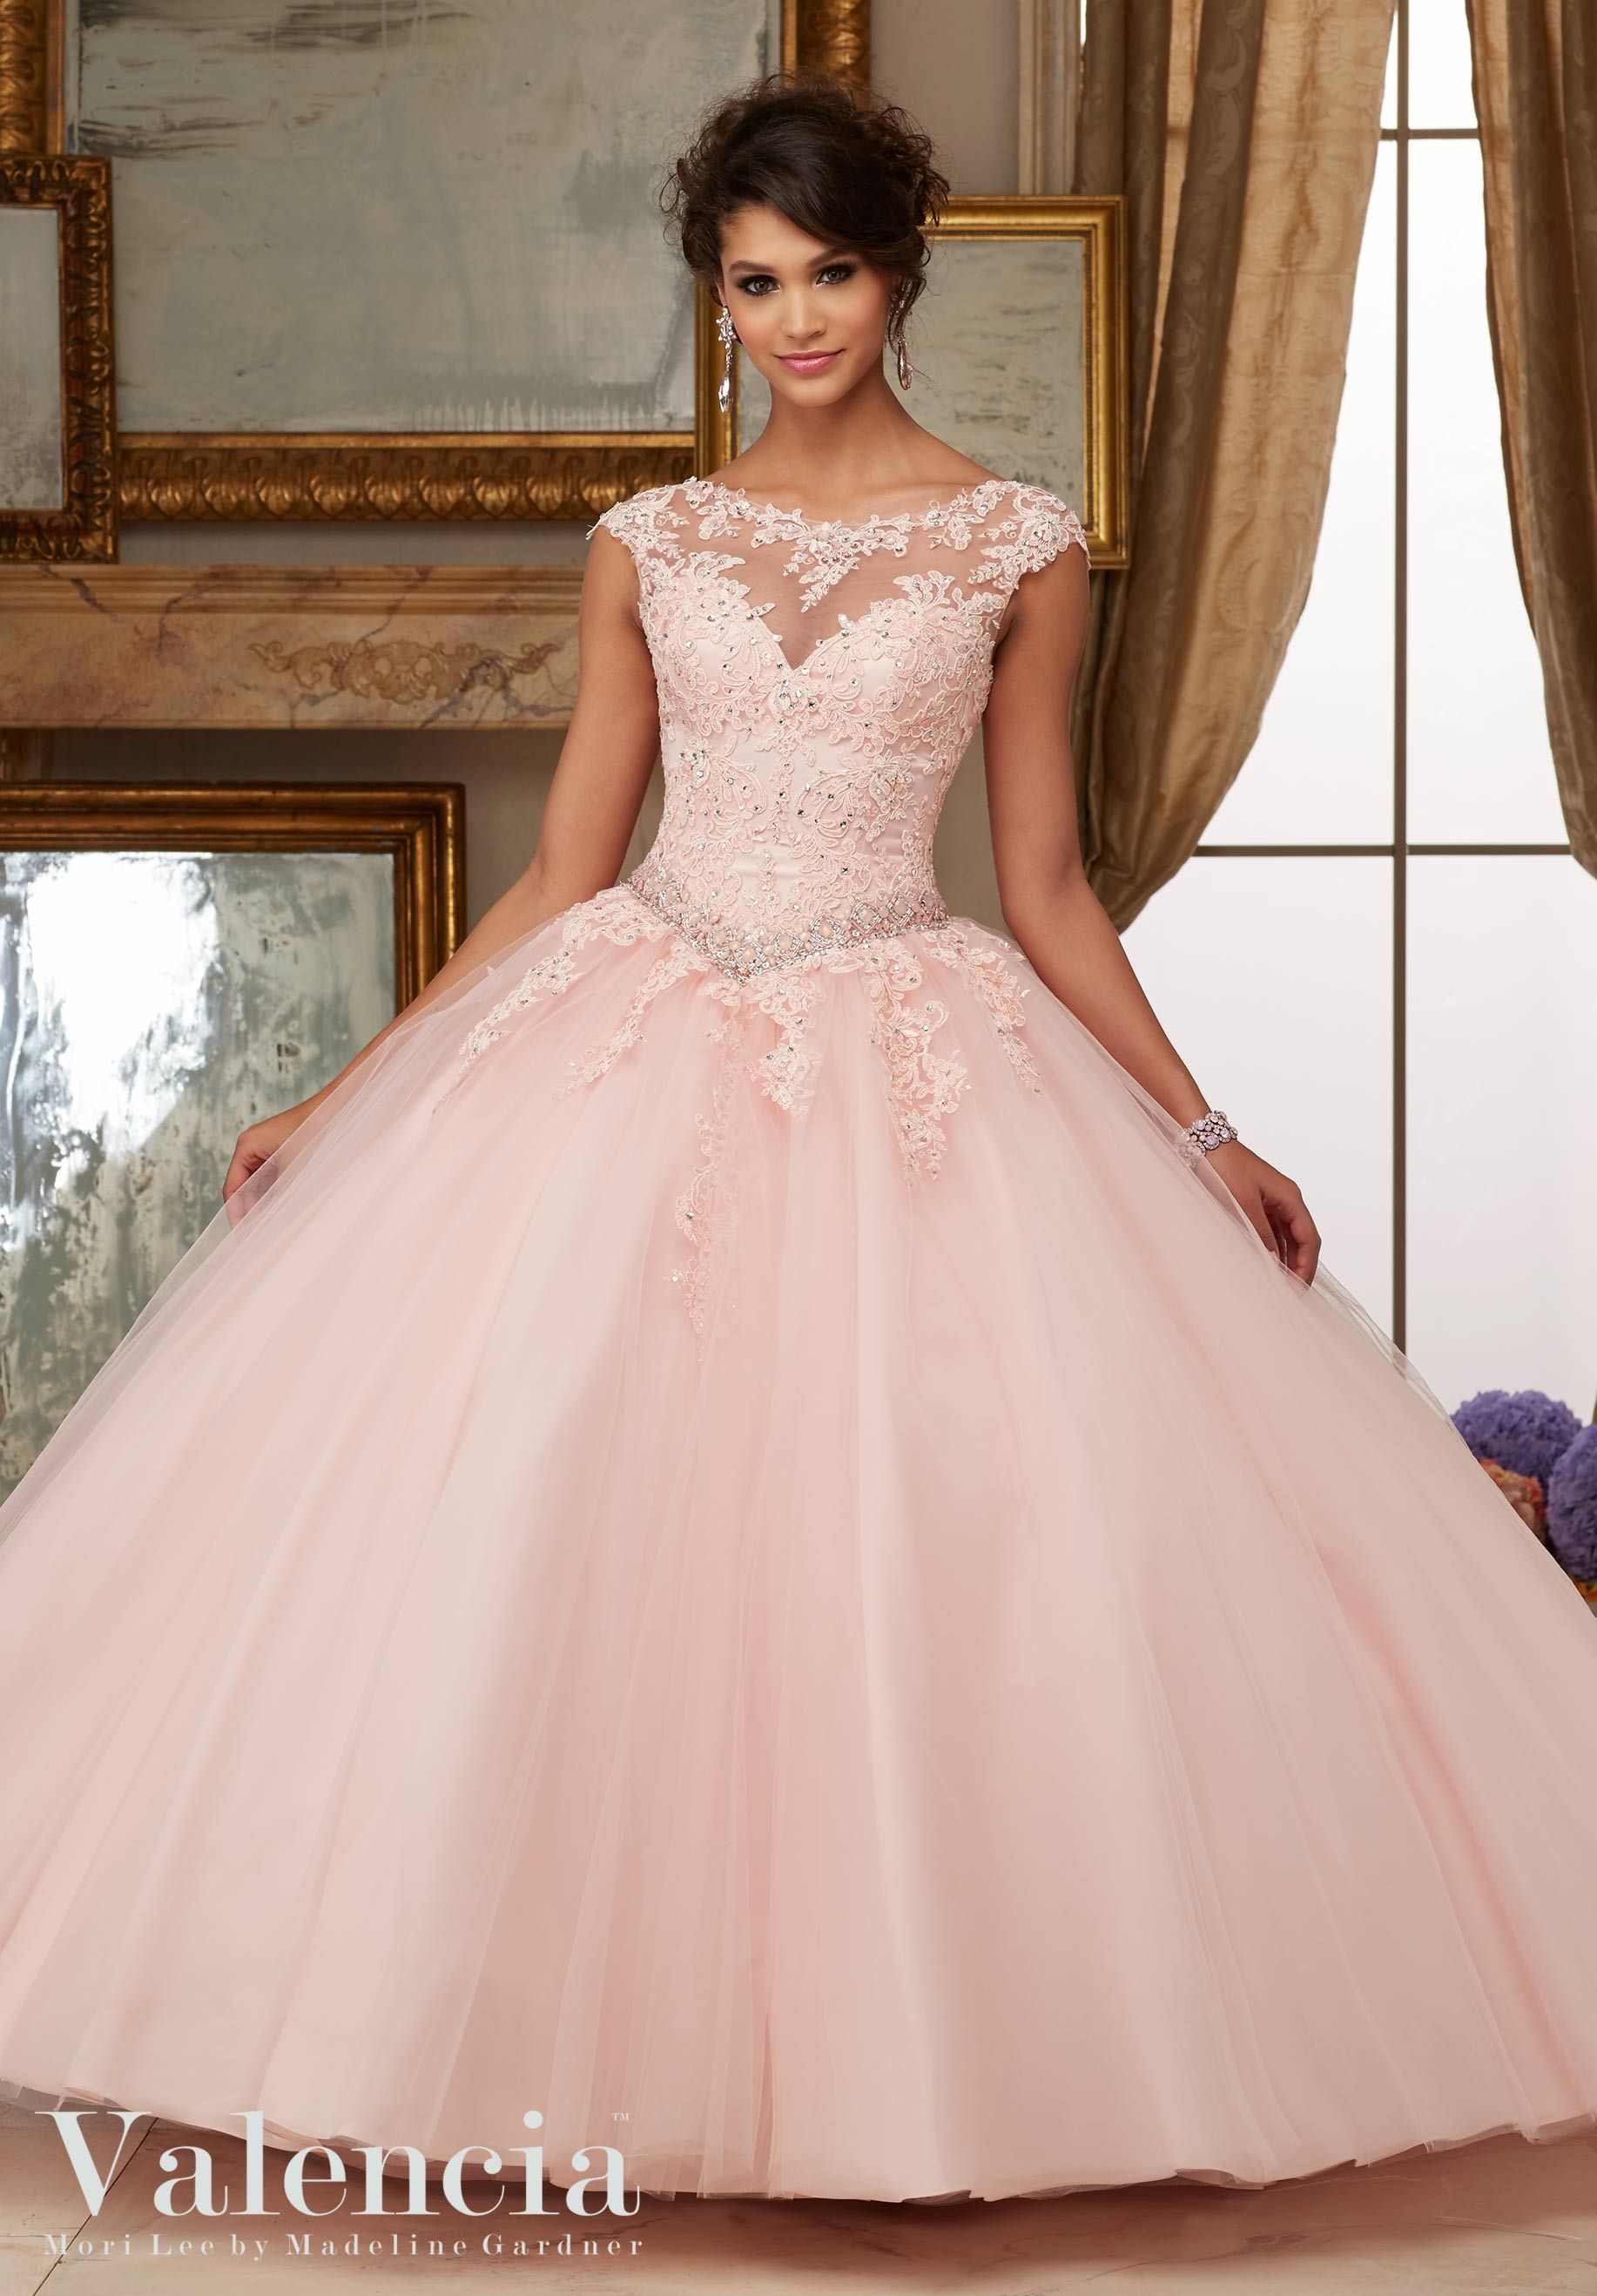 94d6f024cbd Quinceanera Dress 60006 Crystal Beaded Lace Appliques on Tulle Ball Gown